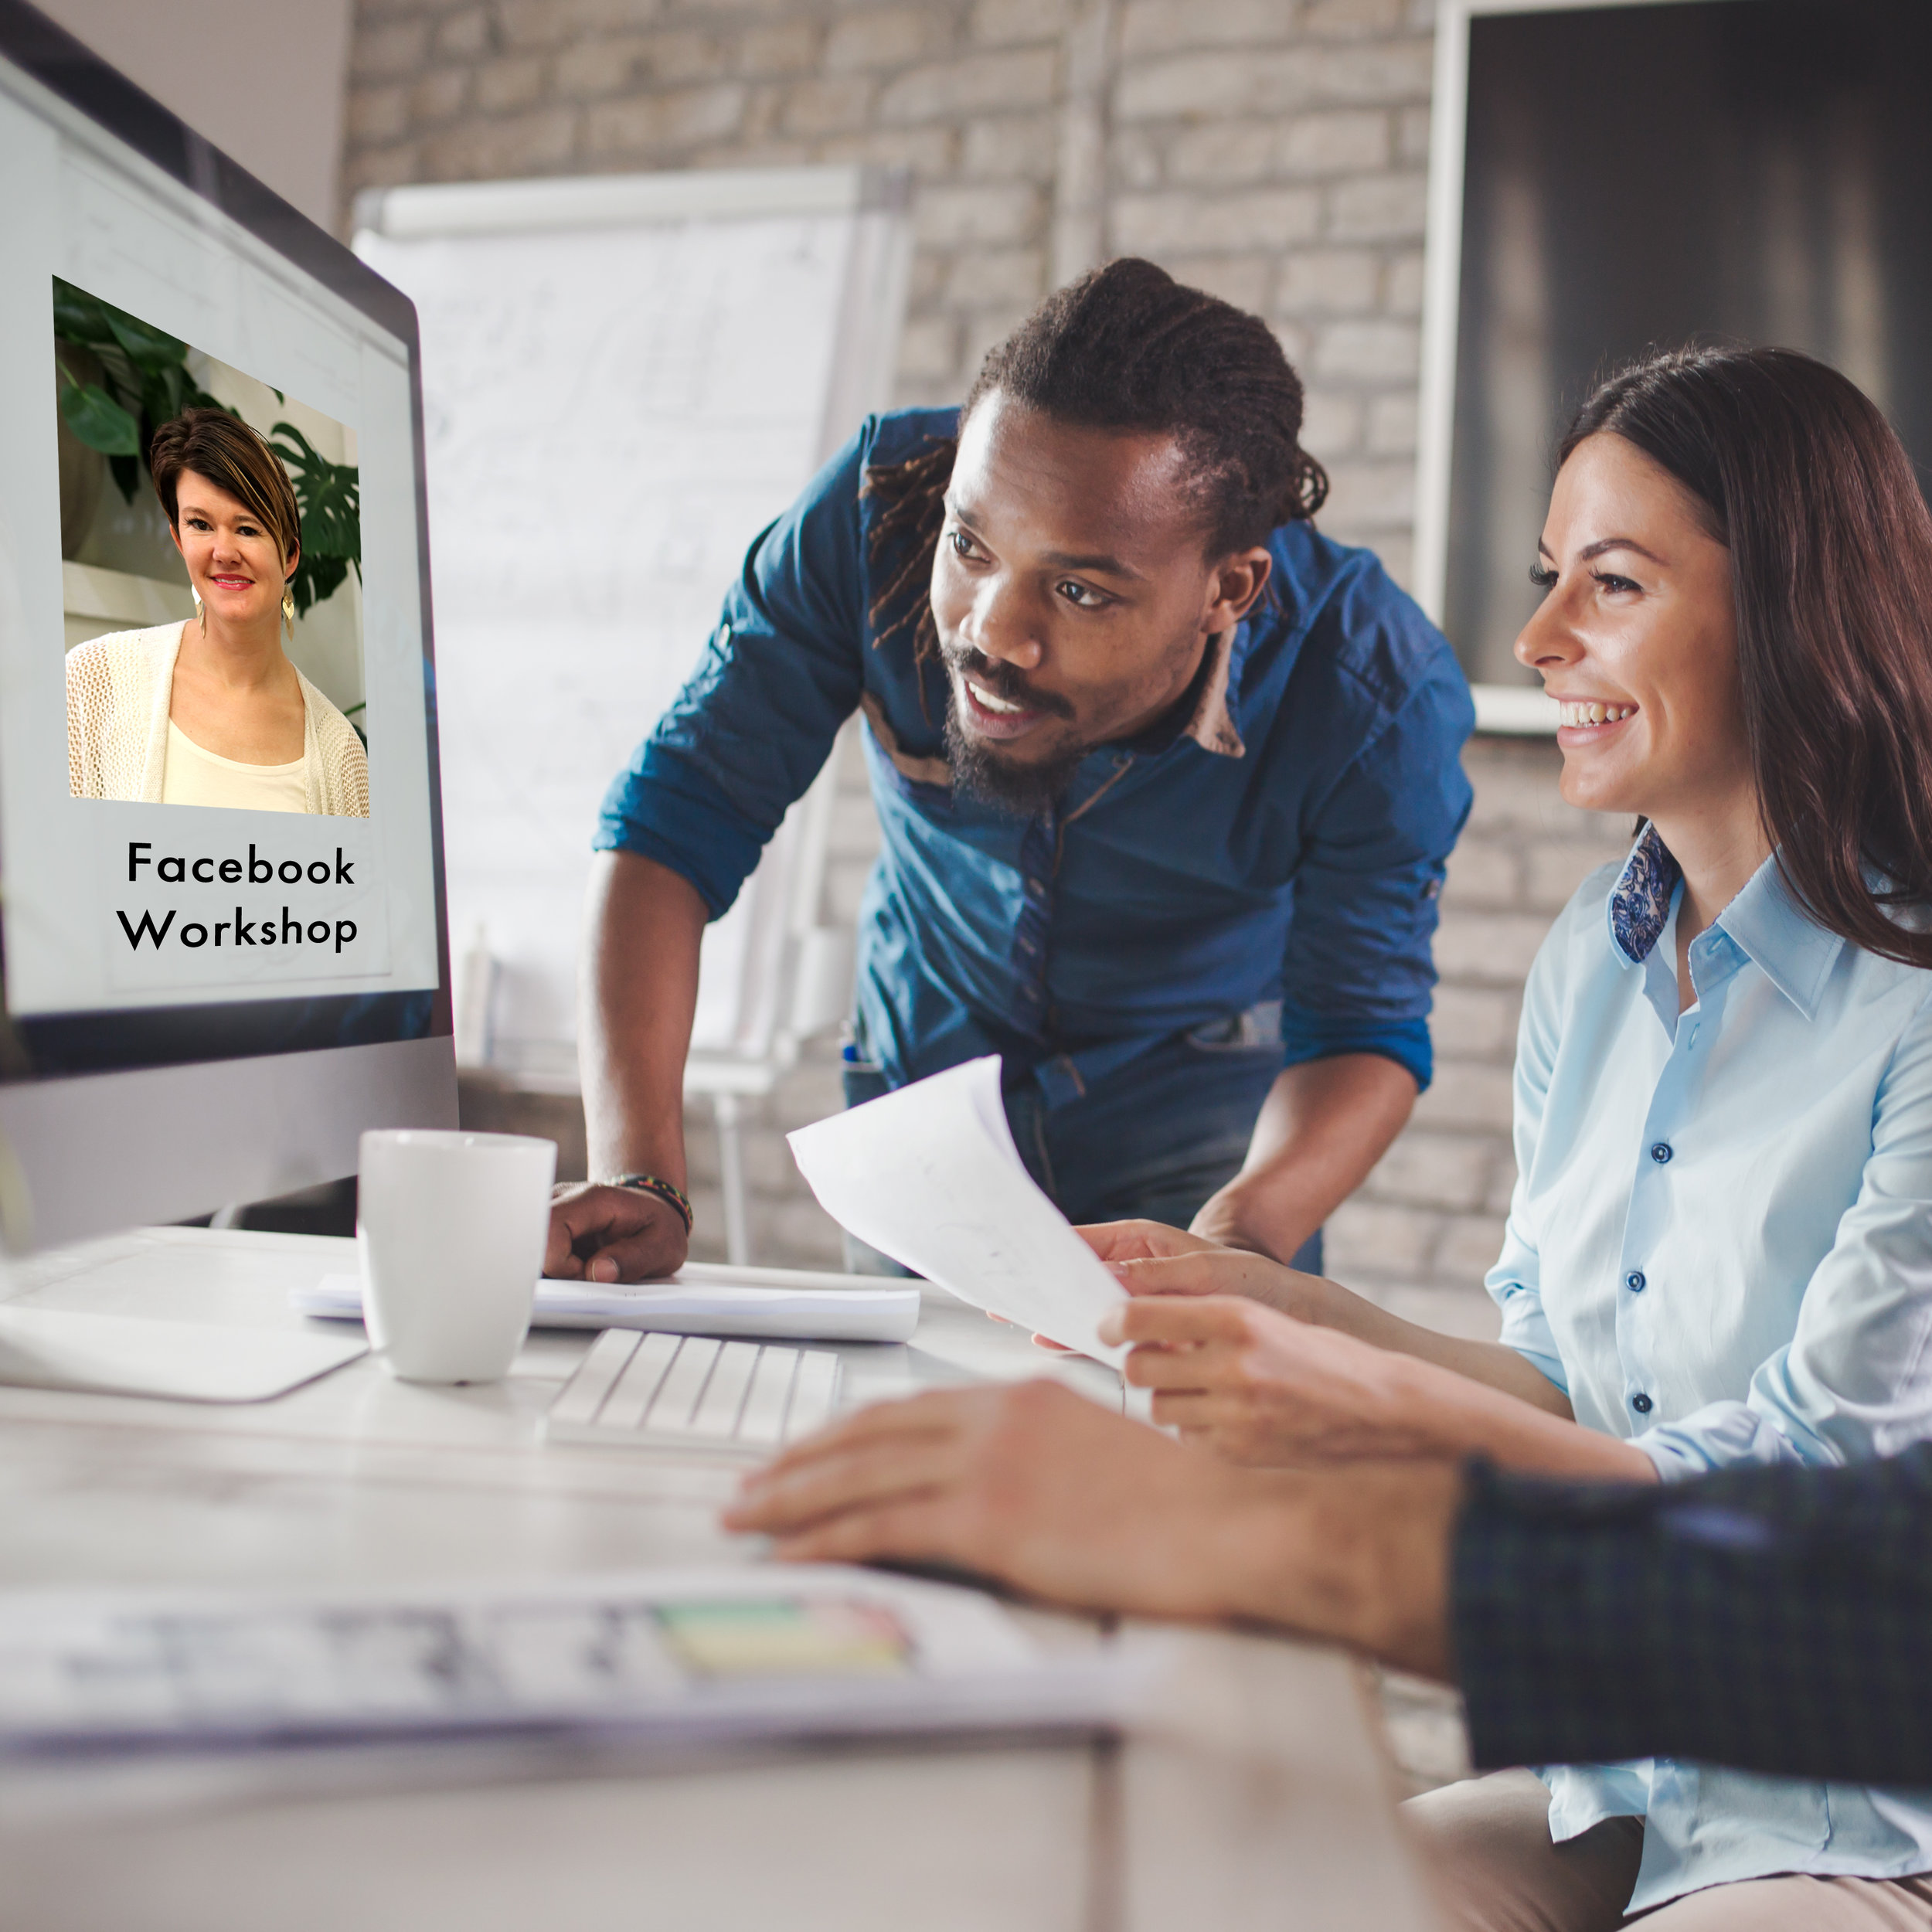 Join a Workshop!  This is for business owners or marketers that want to be trained on how to run successful Facebook Ads for their business in one day!